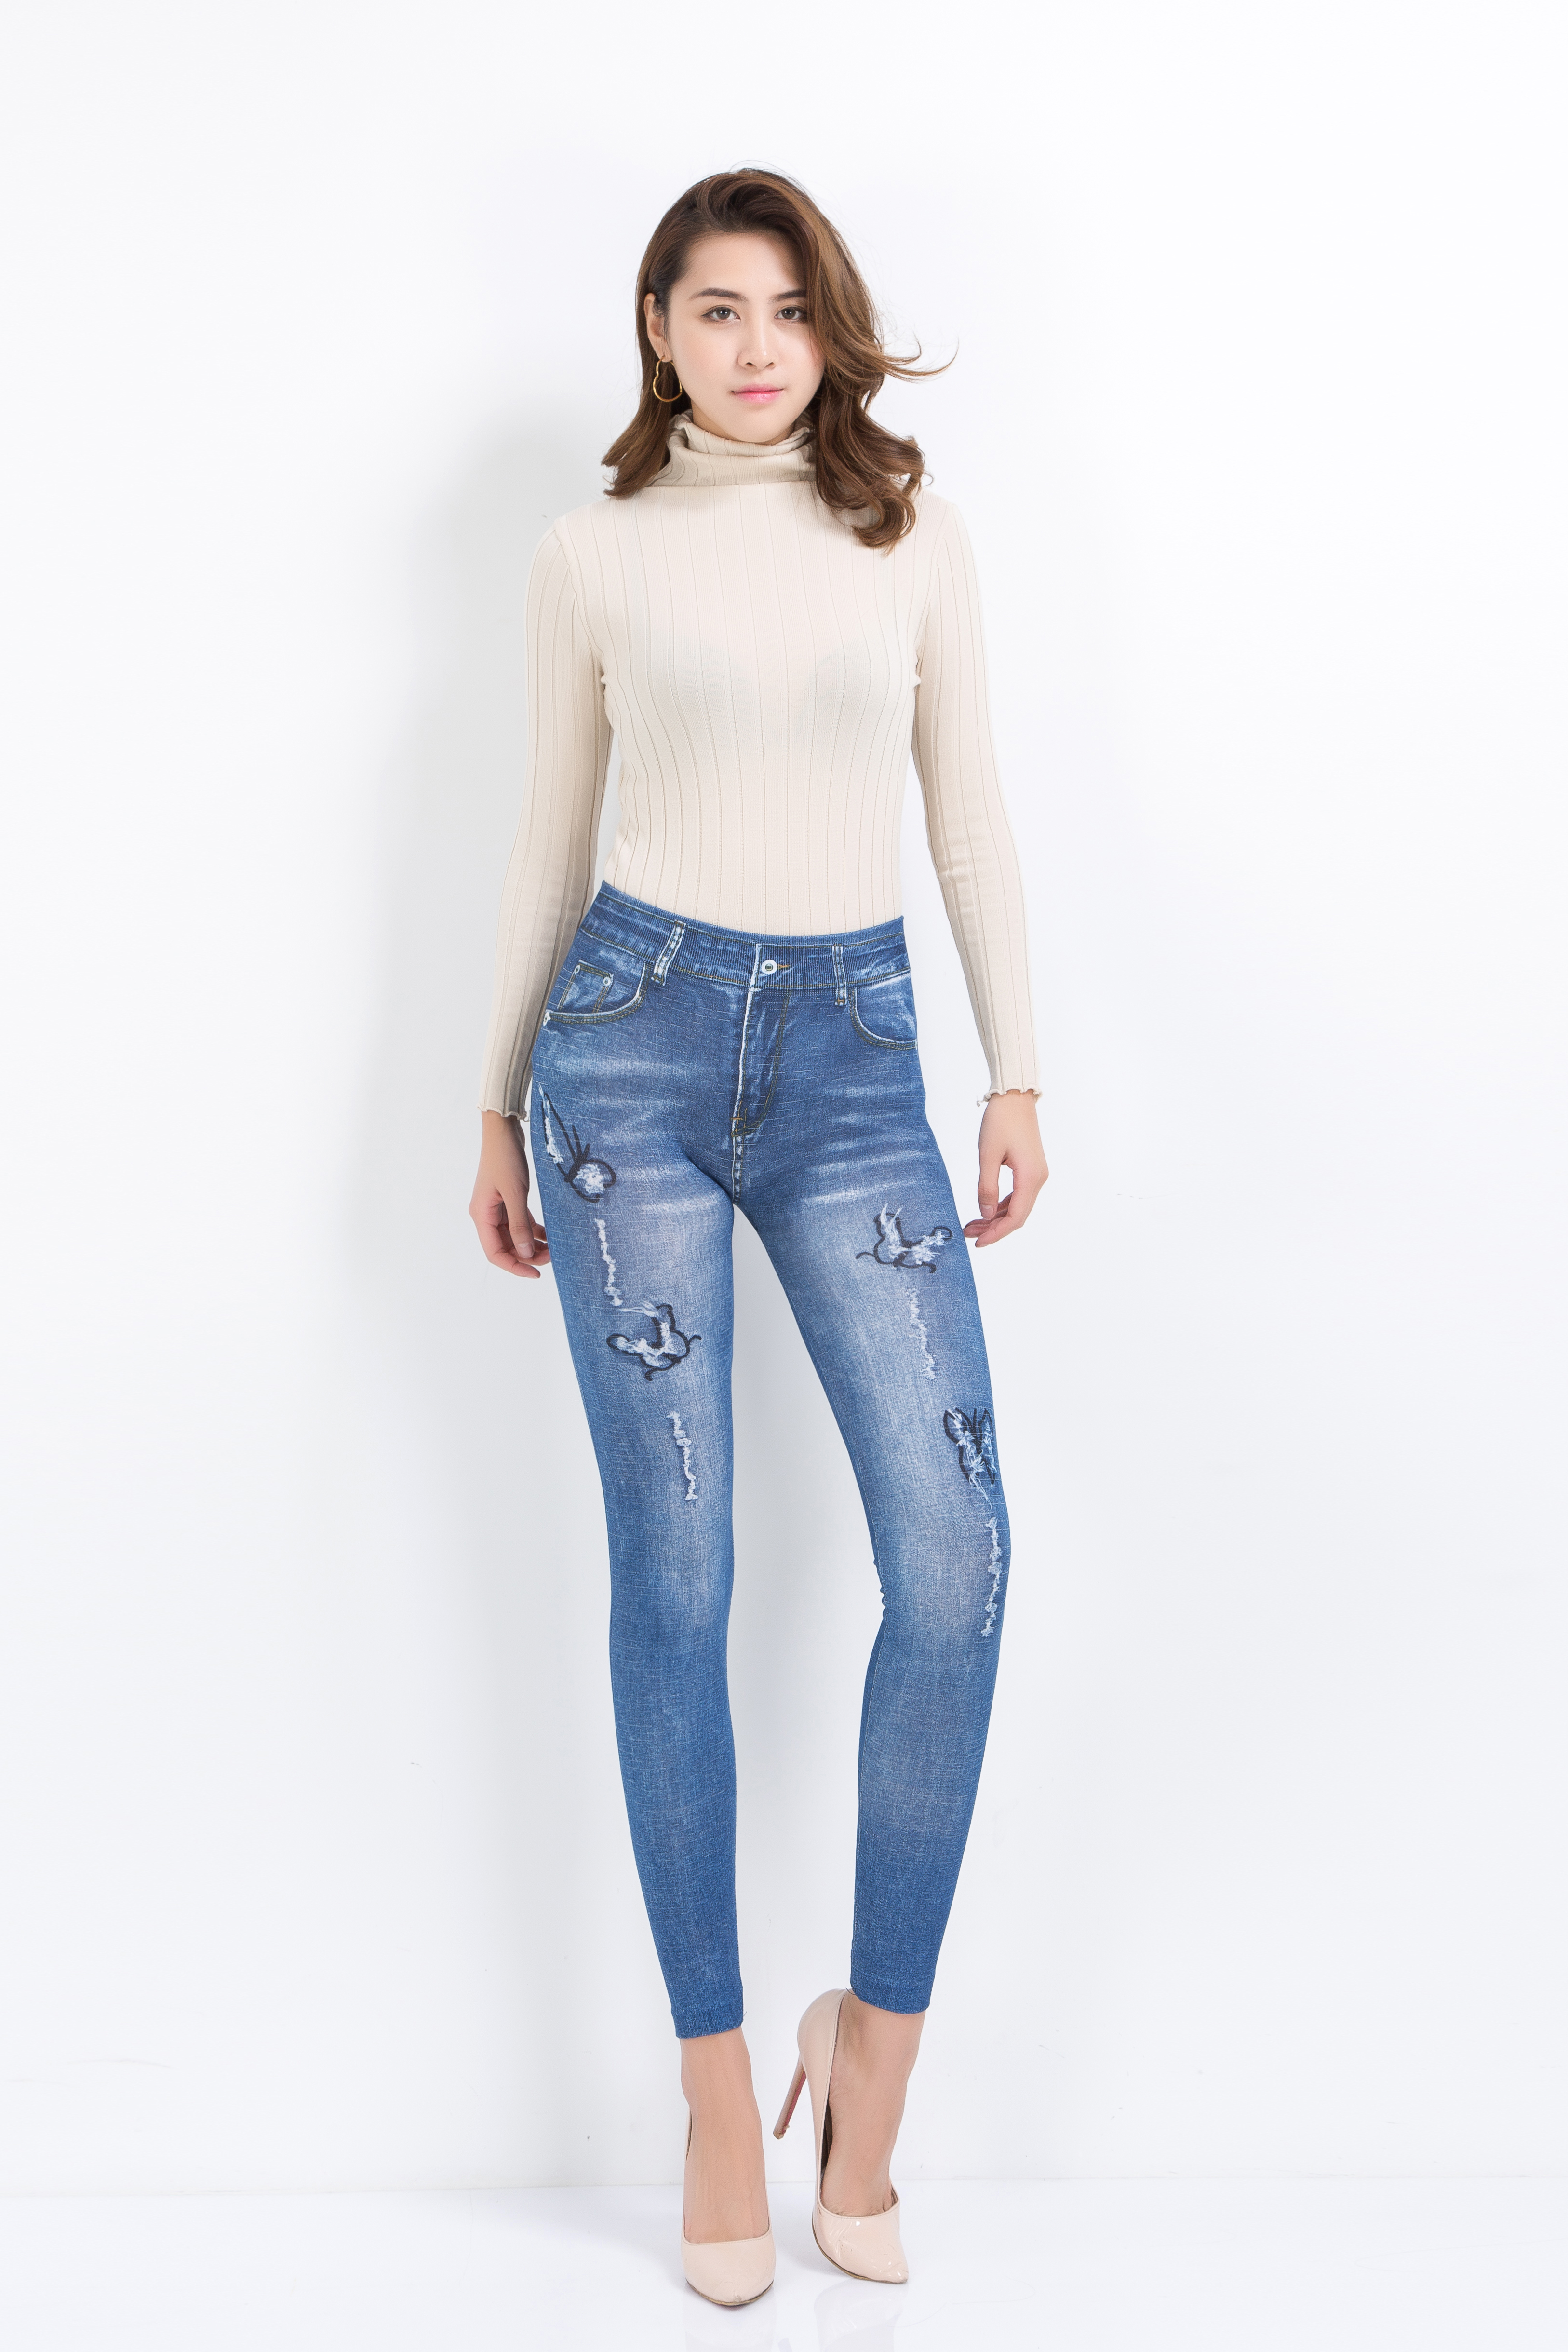 Leggings for women elastic and sexy OEMEN LR669-4 jeans butterfly pattern shipping from Russia